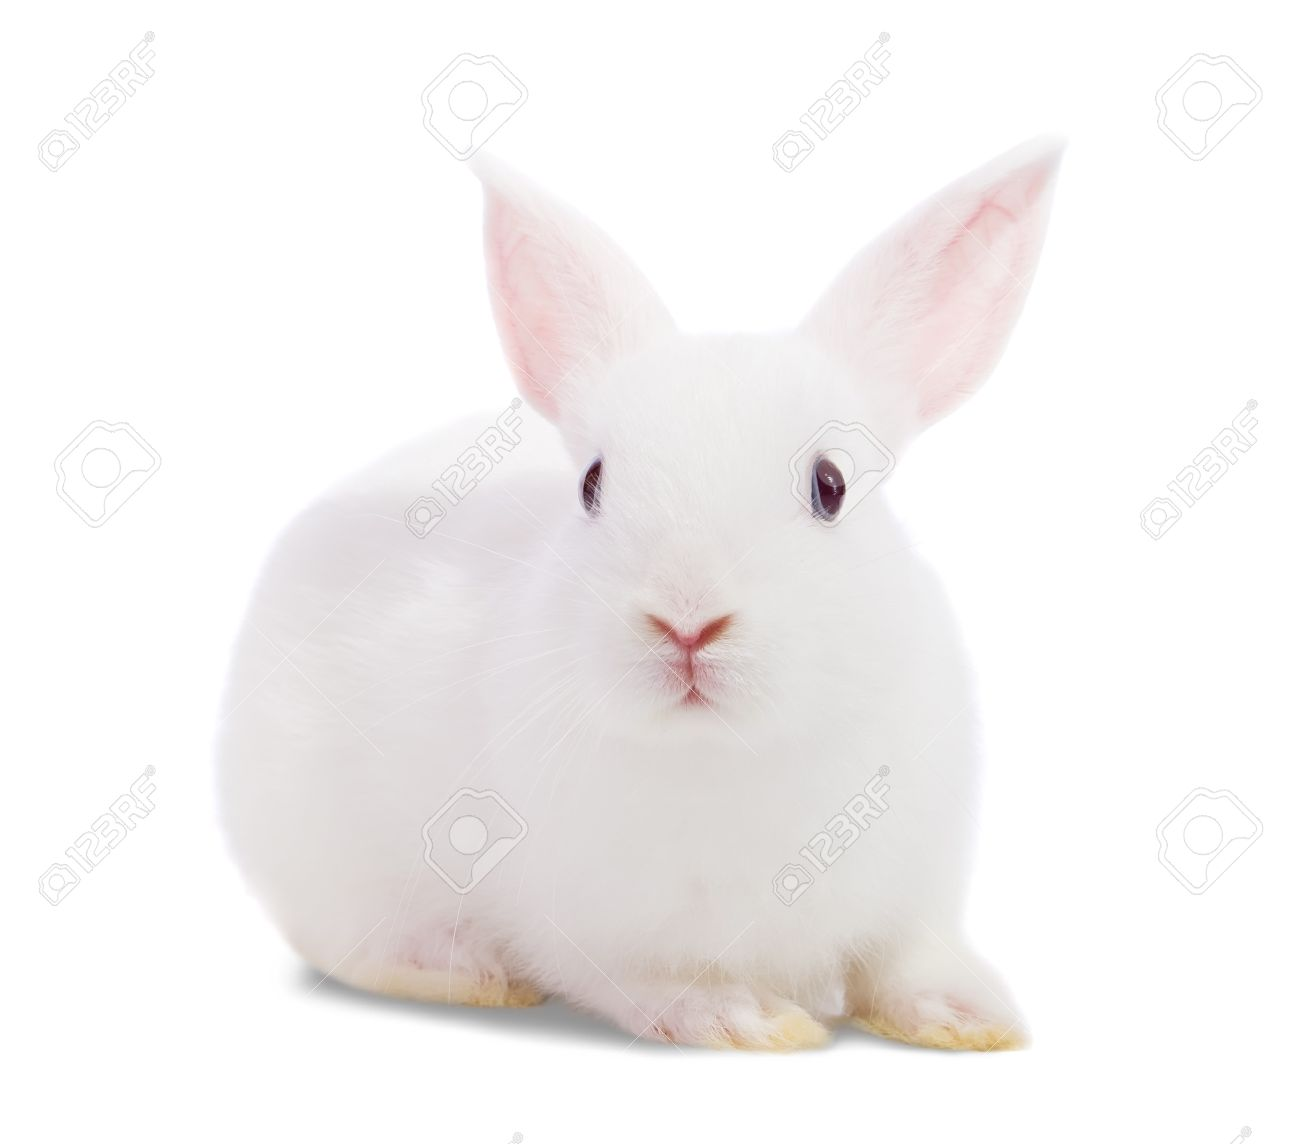 Little white rabbit. Isolated on white background Stock Photo - 7881623